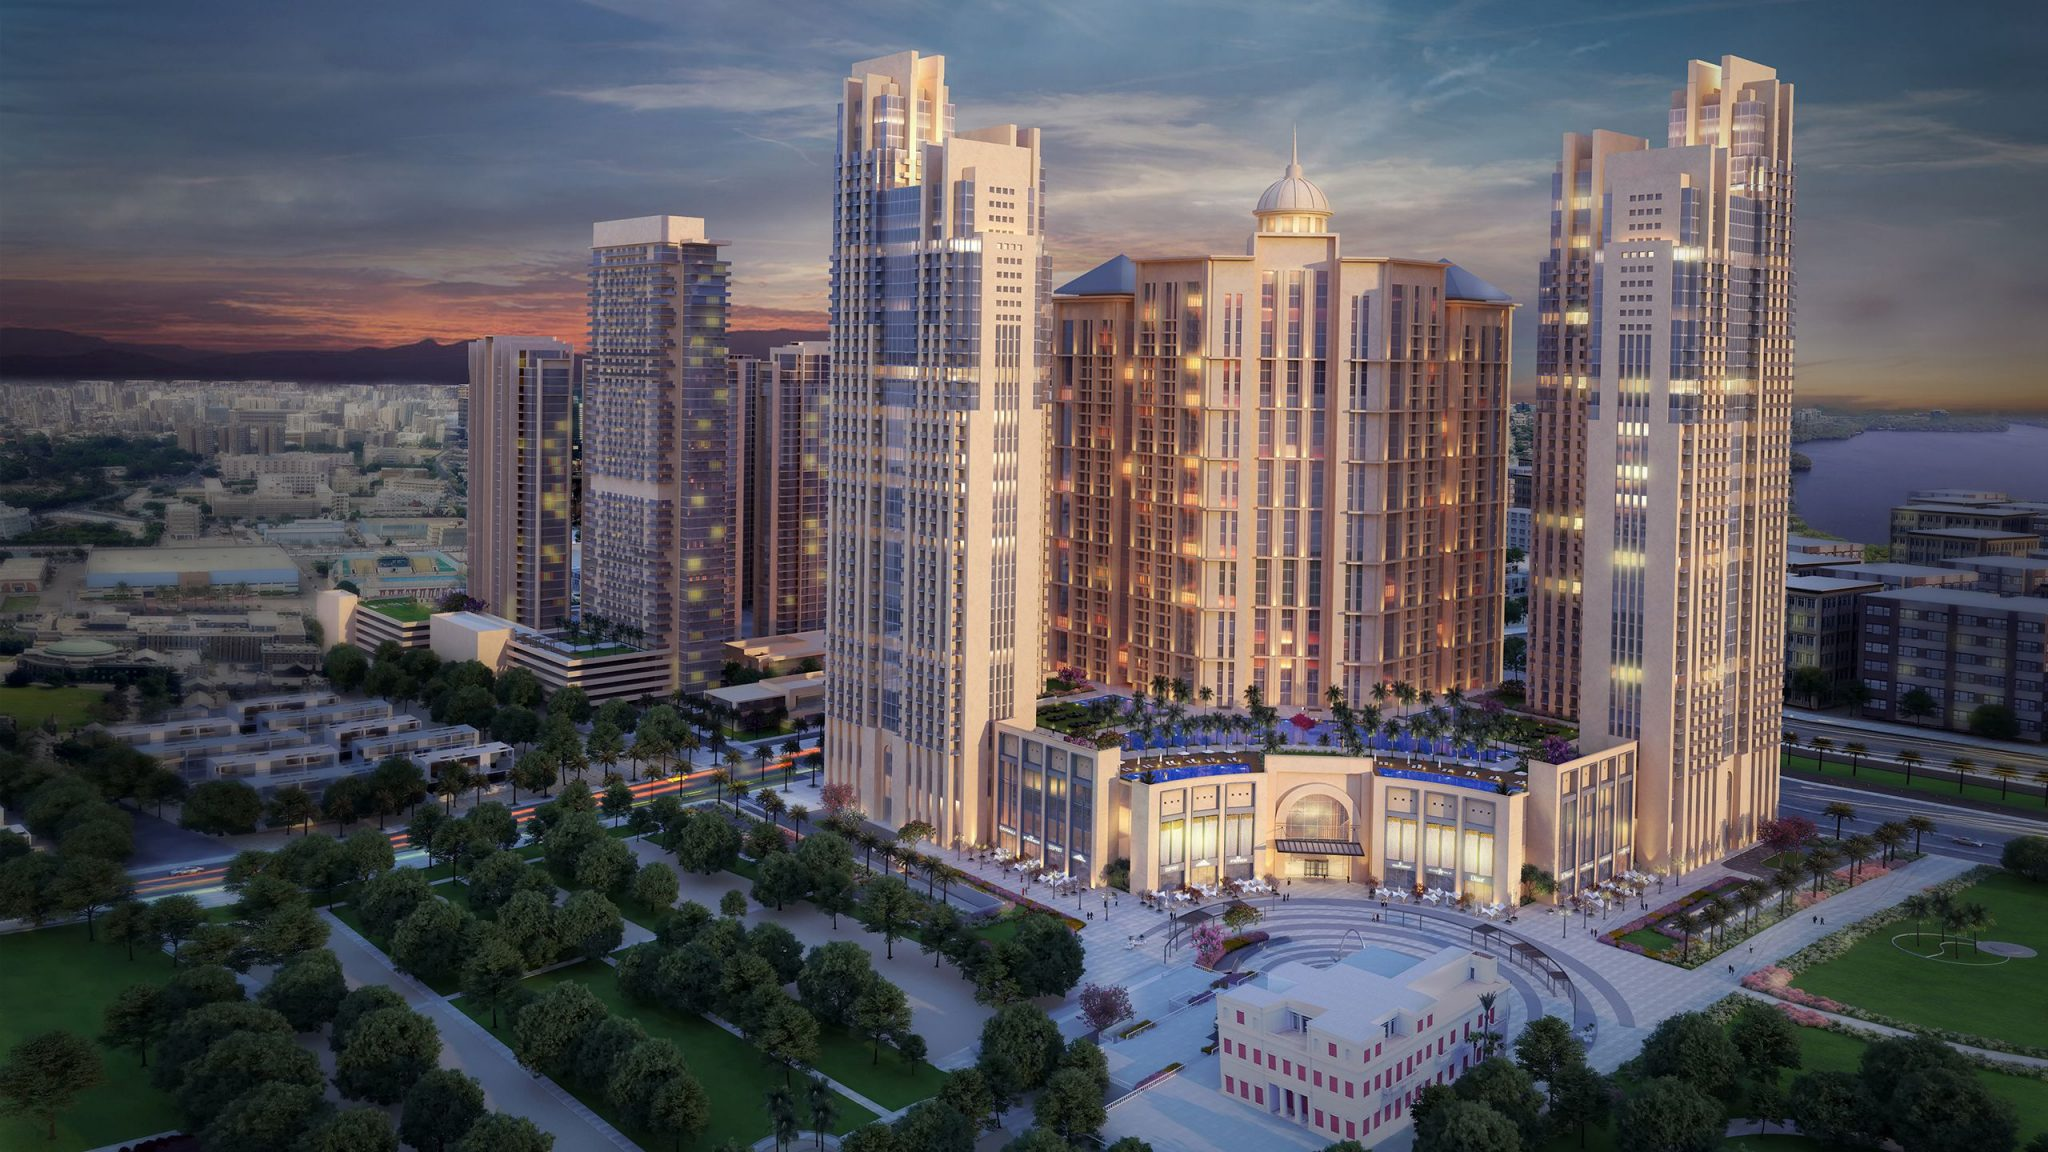 COMMERCIAL DEVELOPMENT IN ANTONIADES ALEXANDRIA